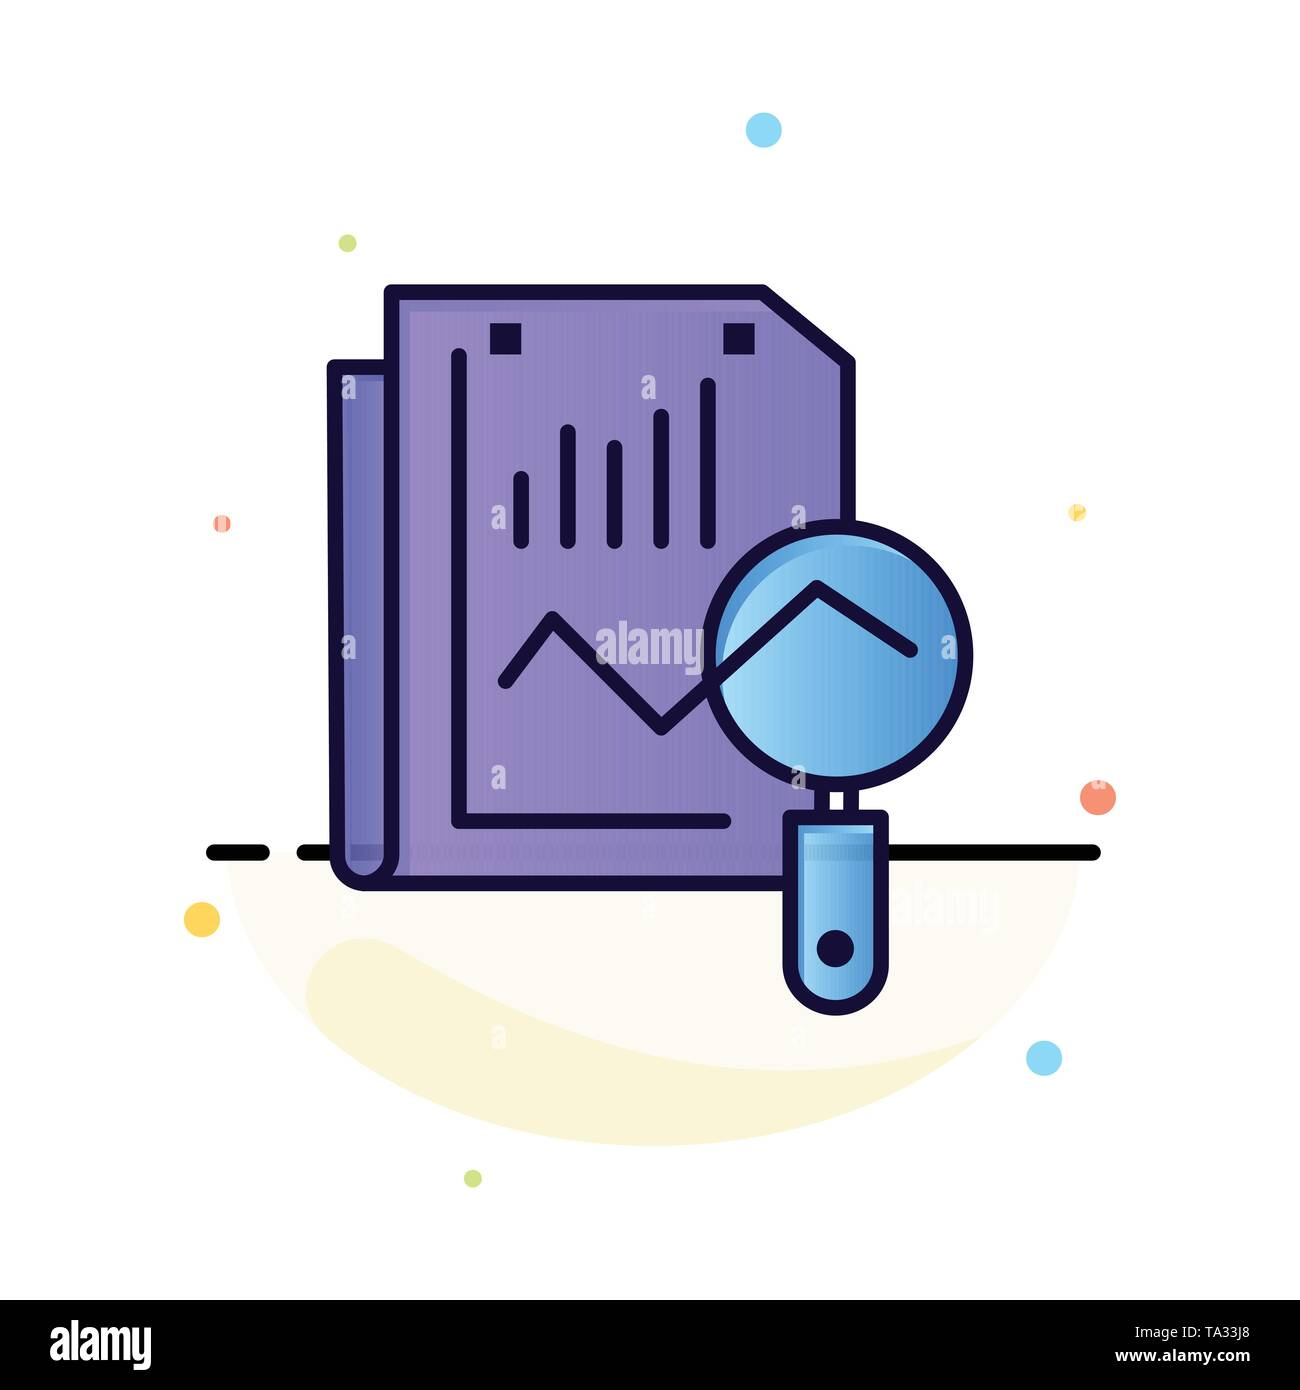 File, Static, Search, Computing Abstract Flat Color Icon Template - Stock Image